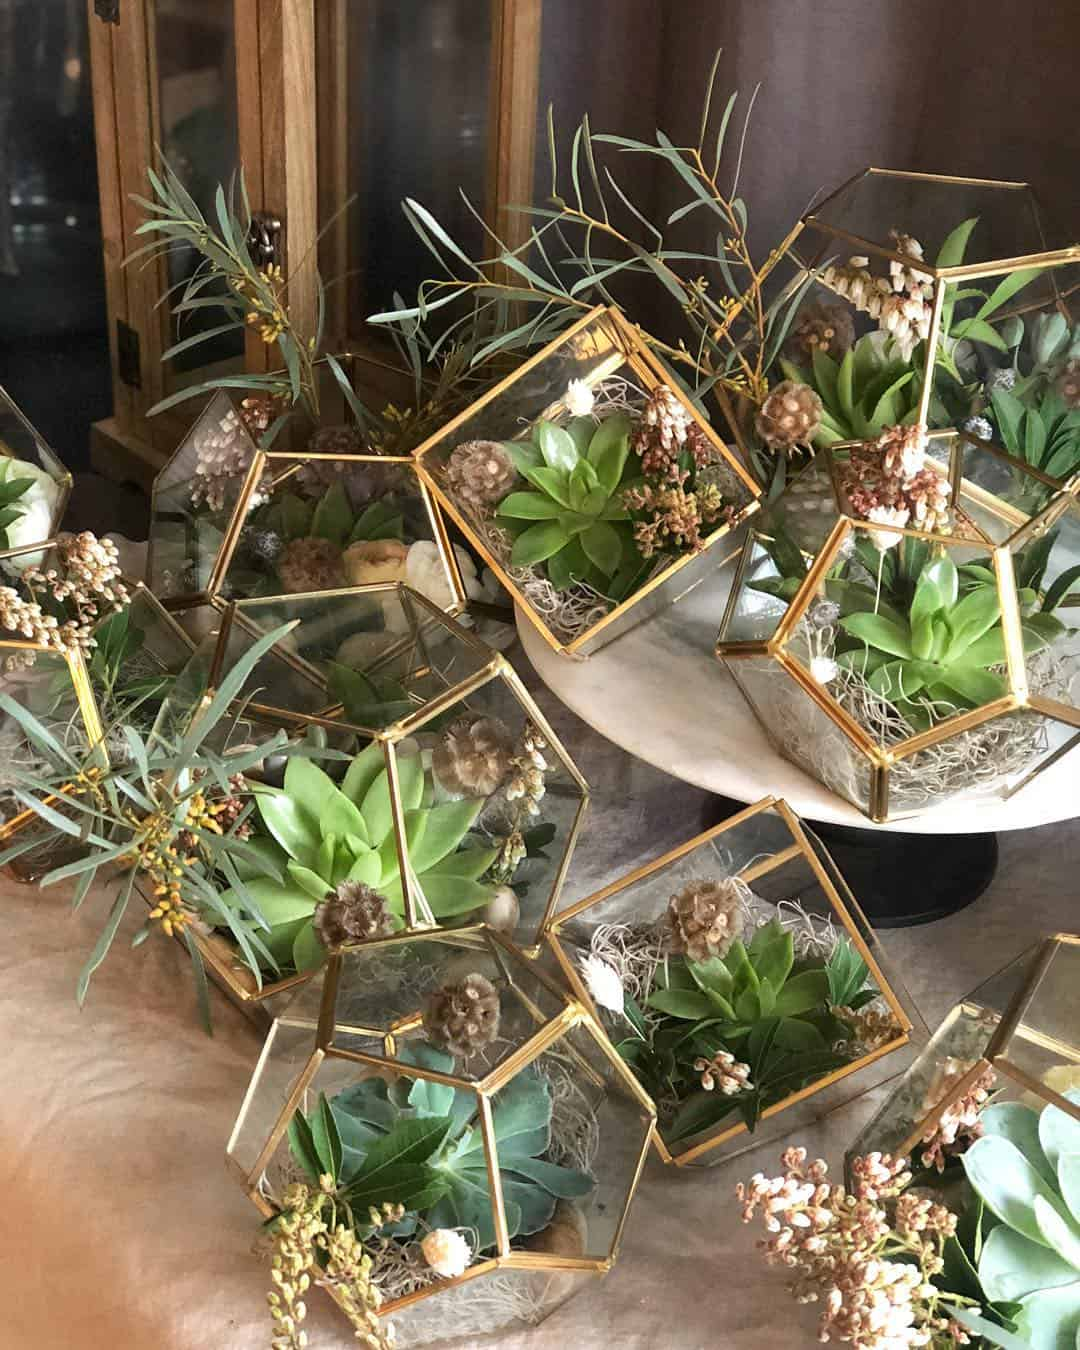 24 Outstanding Ideas for Decorating Your House with Succulents